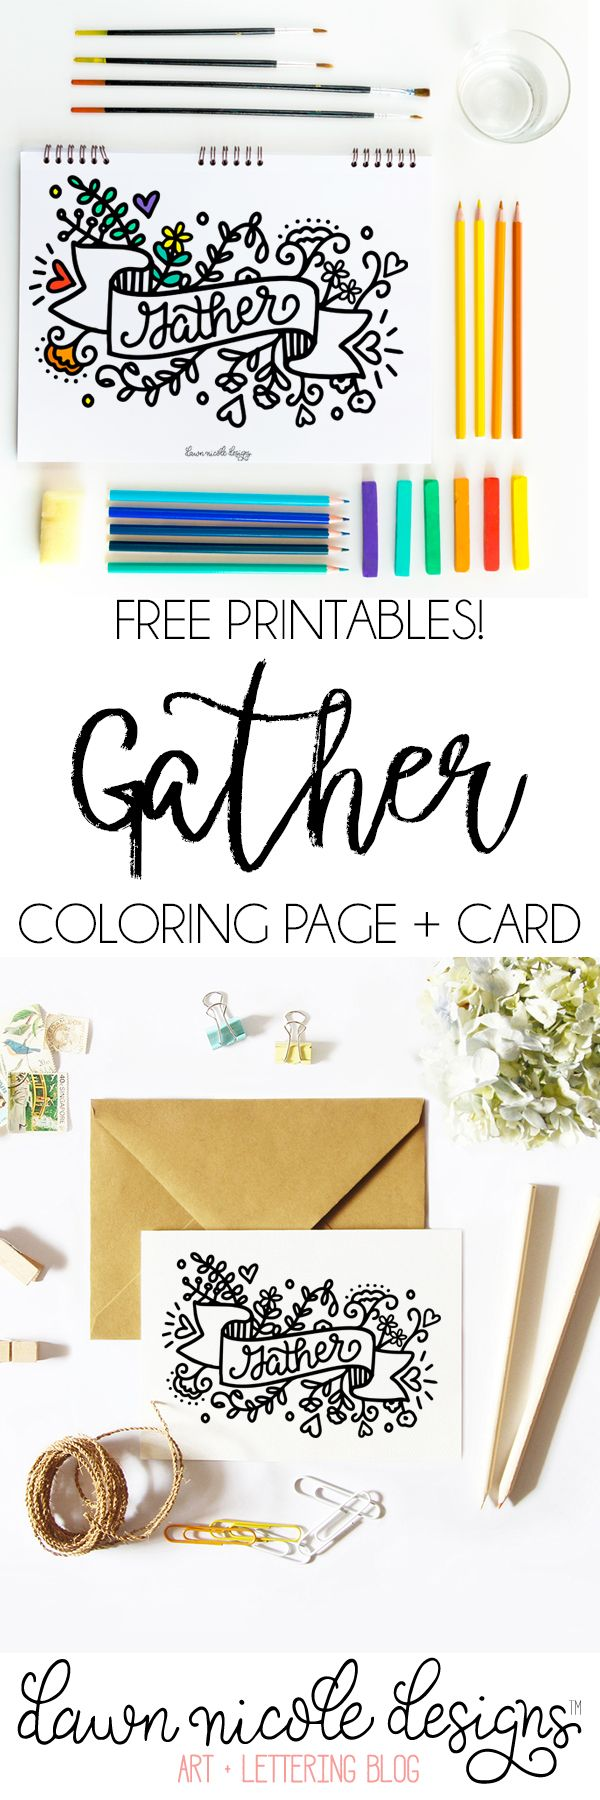 Download Gather: Free Coloring Page + Card   Free coloring pages, Coloring pages, Free coloring